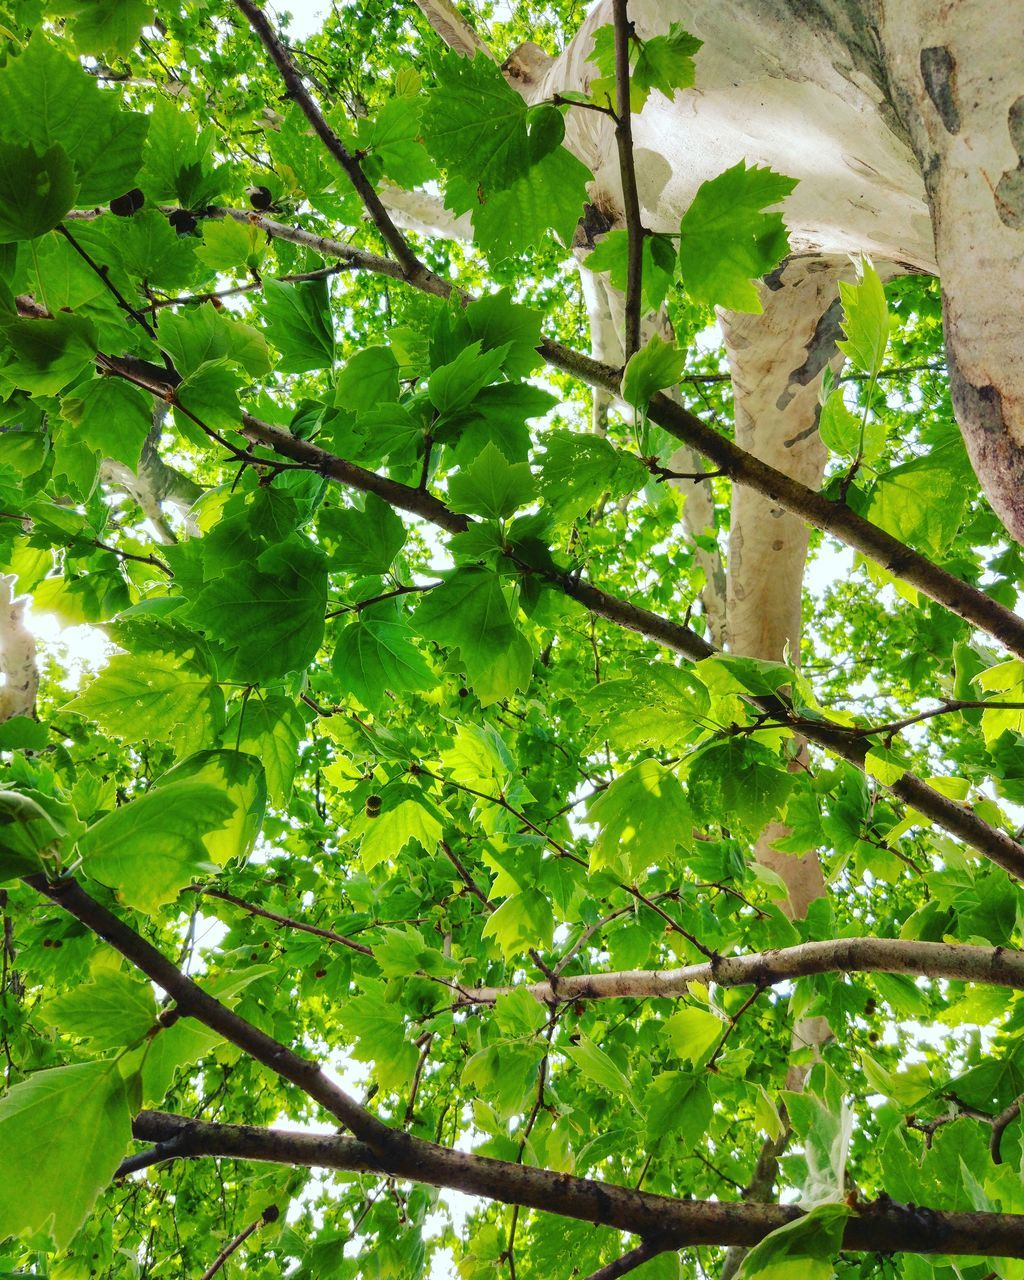 growth, tree, green color, low angle view, branch, nature, leaf, no people, day, beauty in nature, outdoors, plant, freshness, close-up